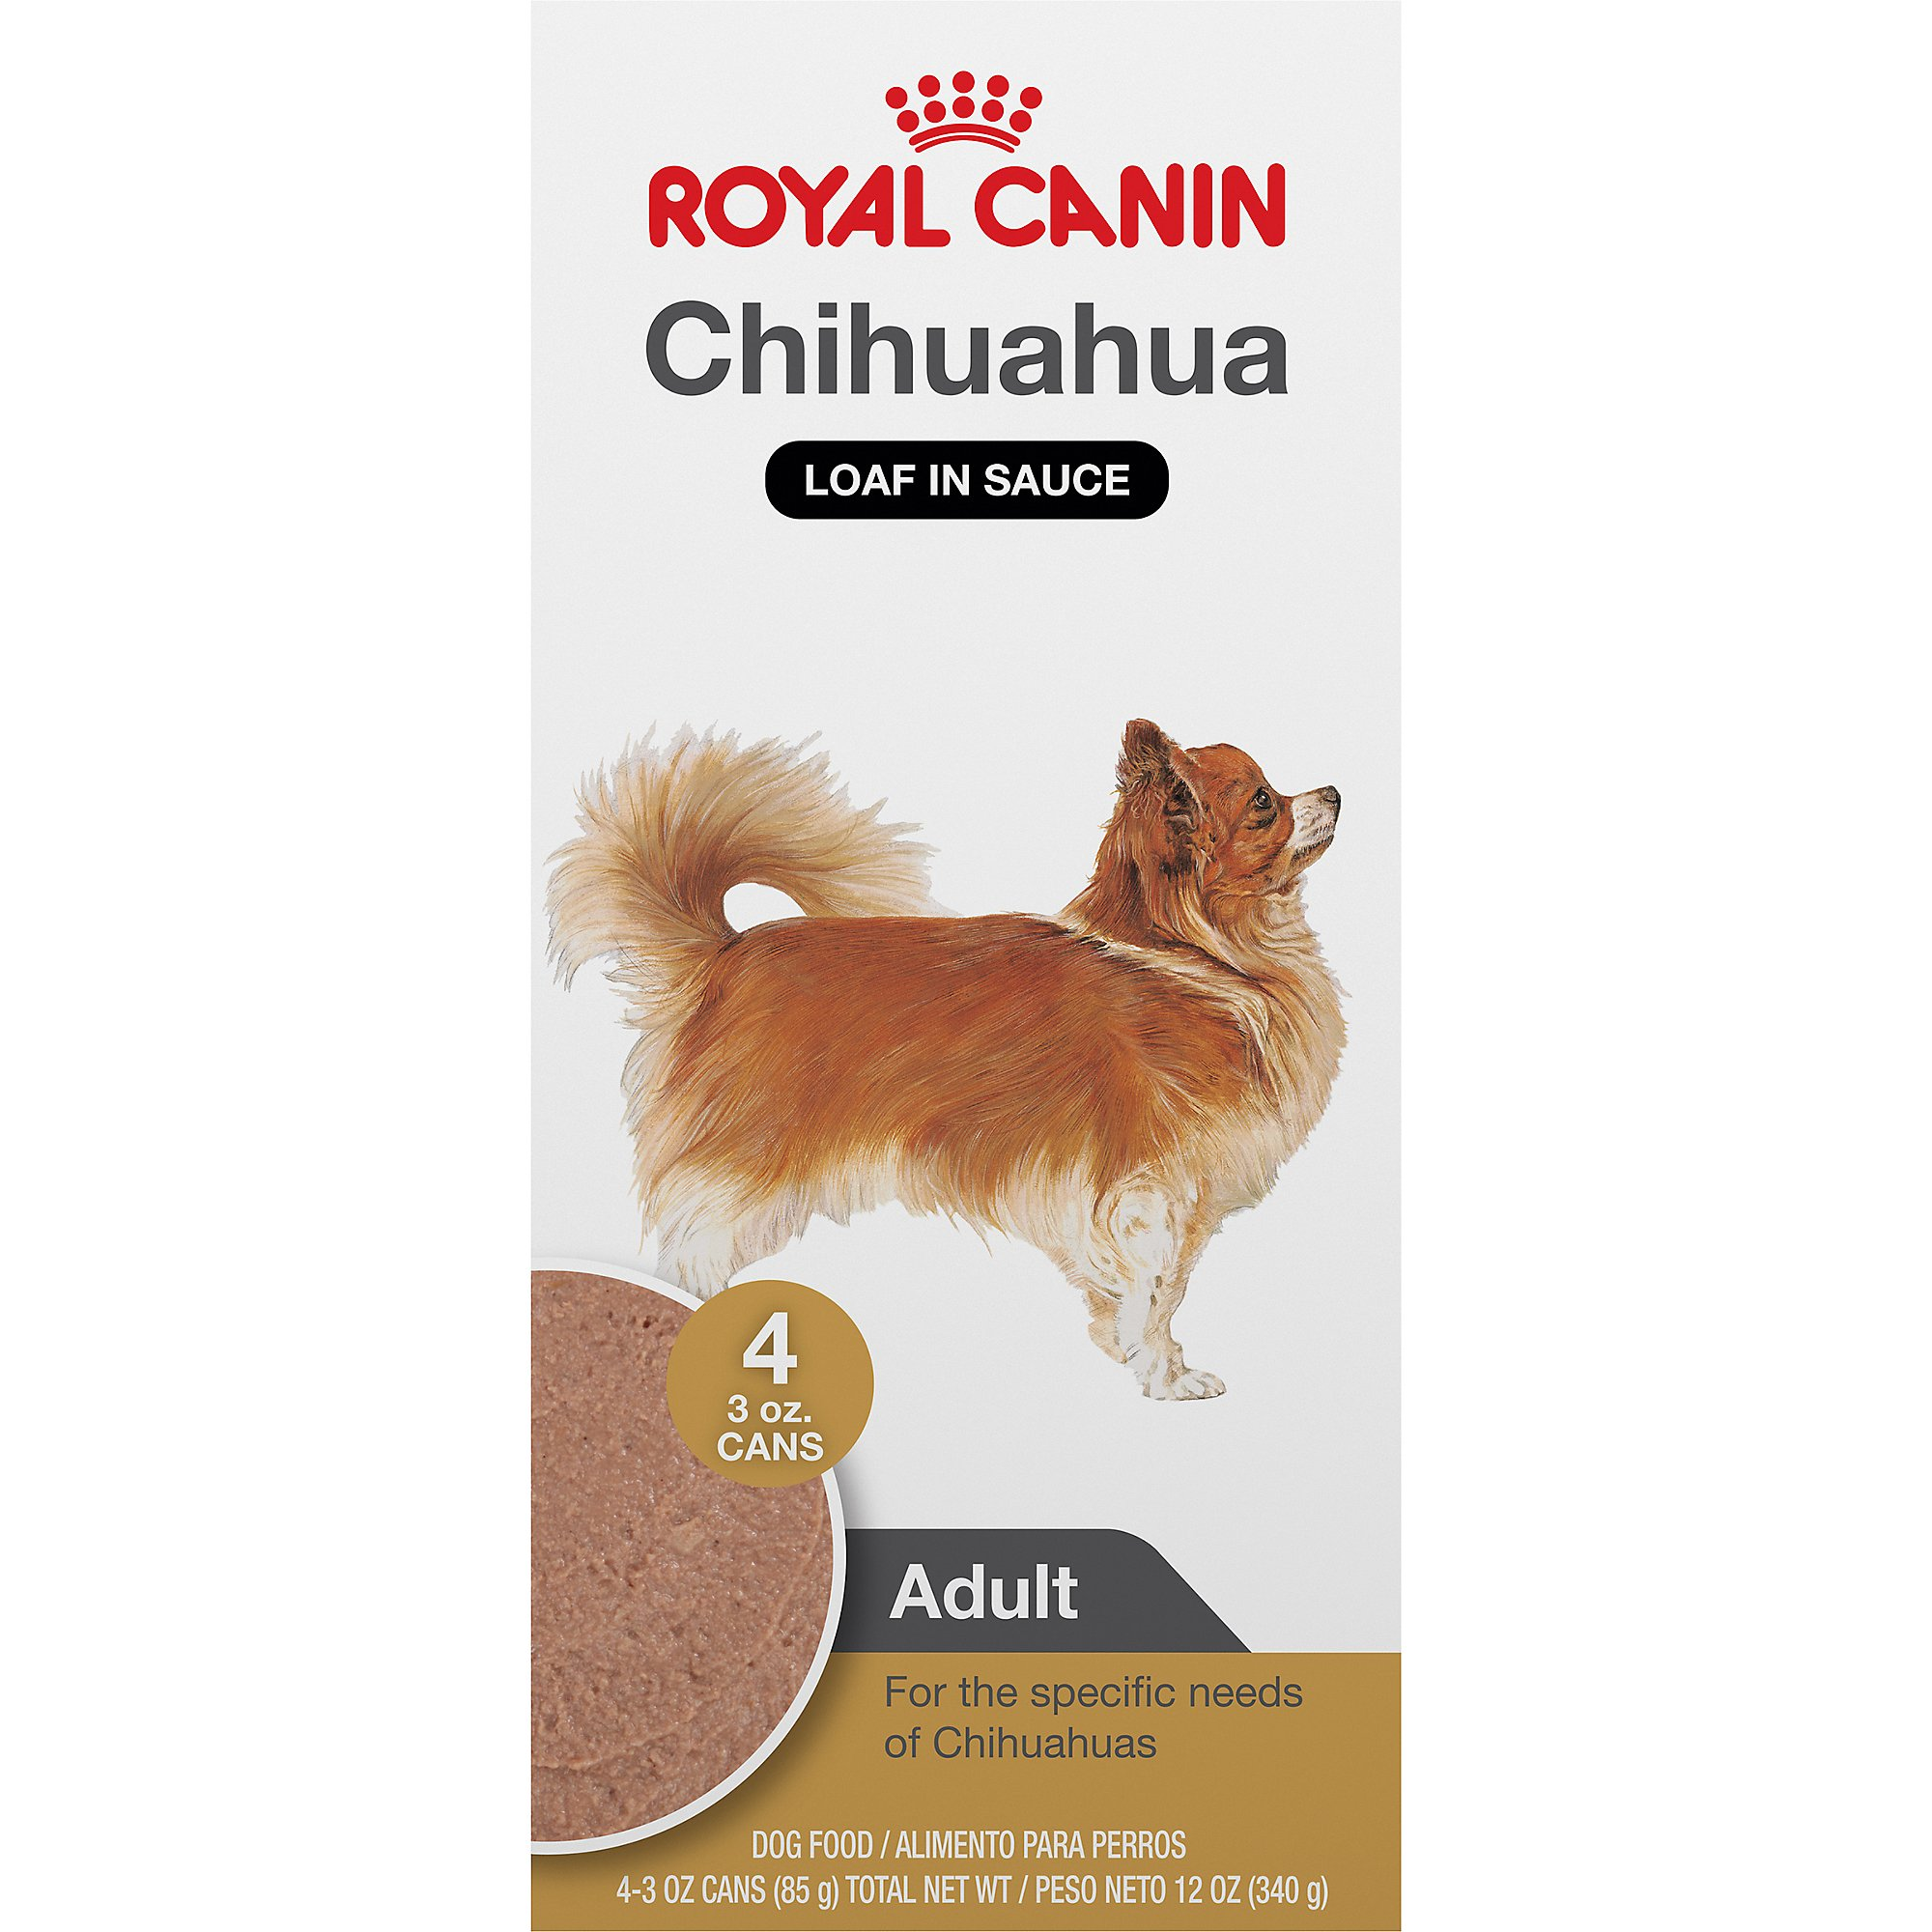 Royal Canin So Canned Dog Food